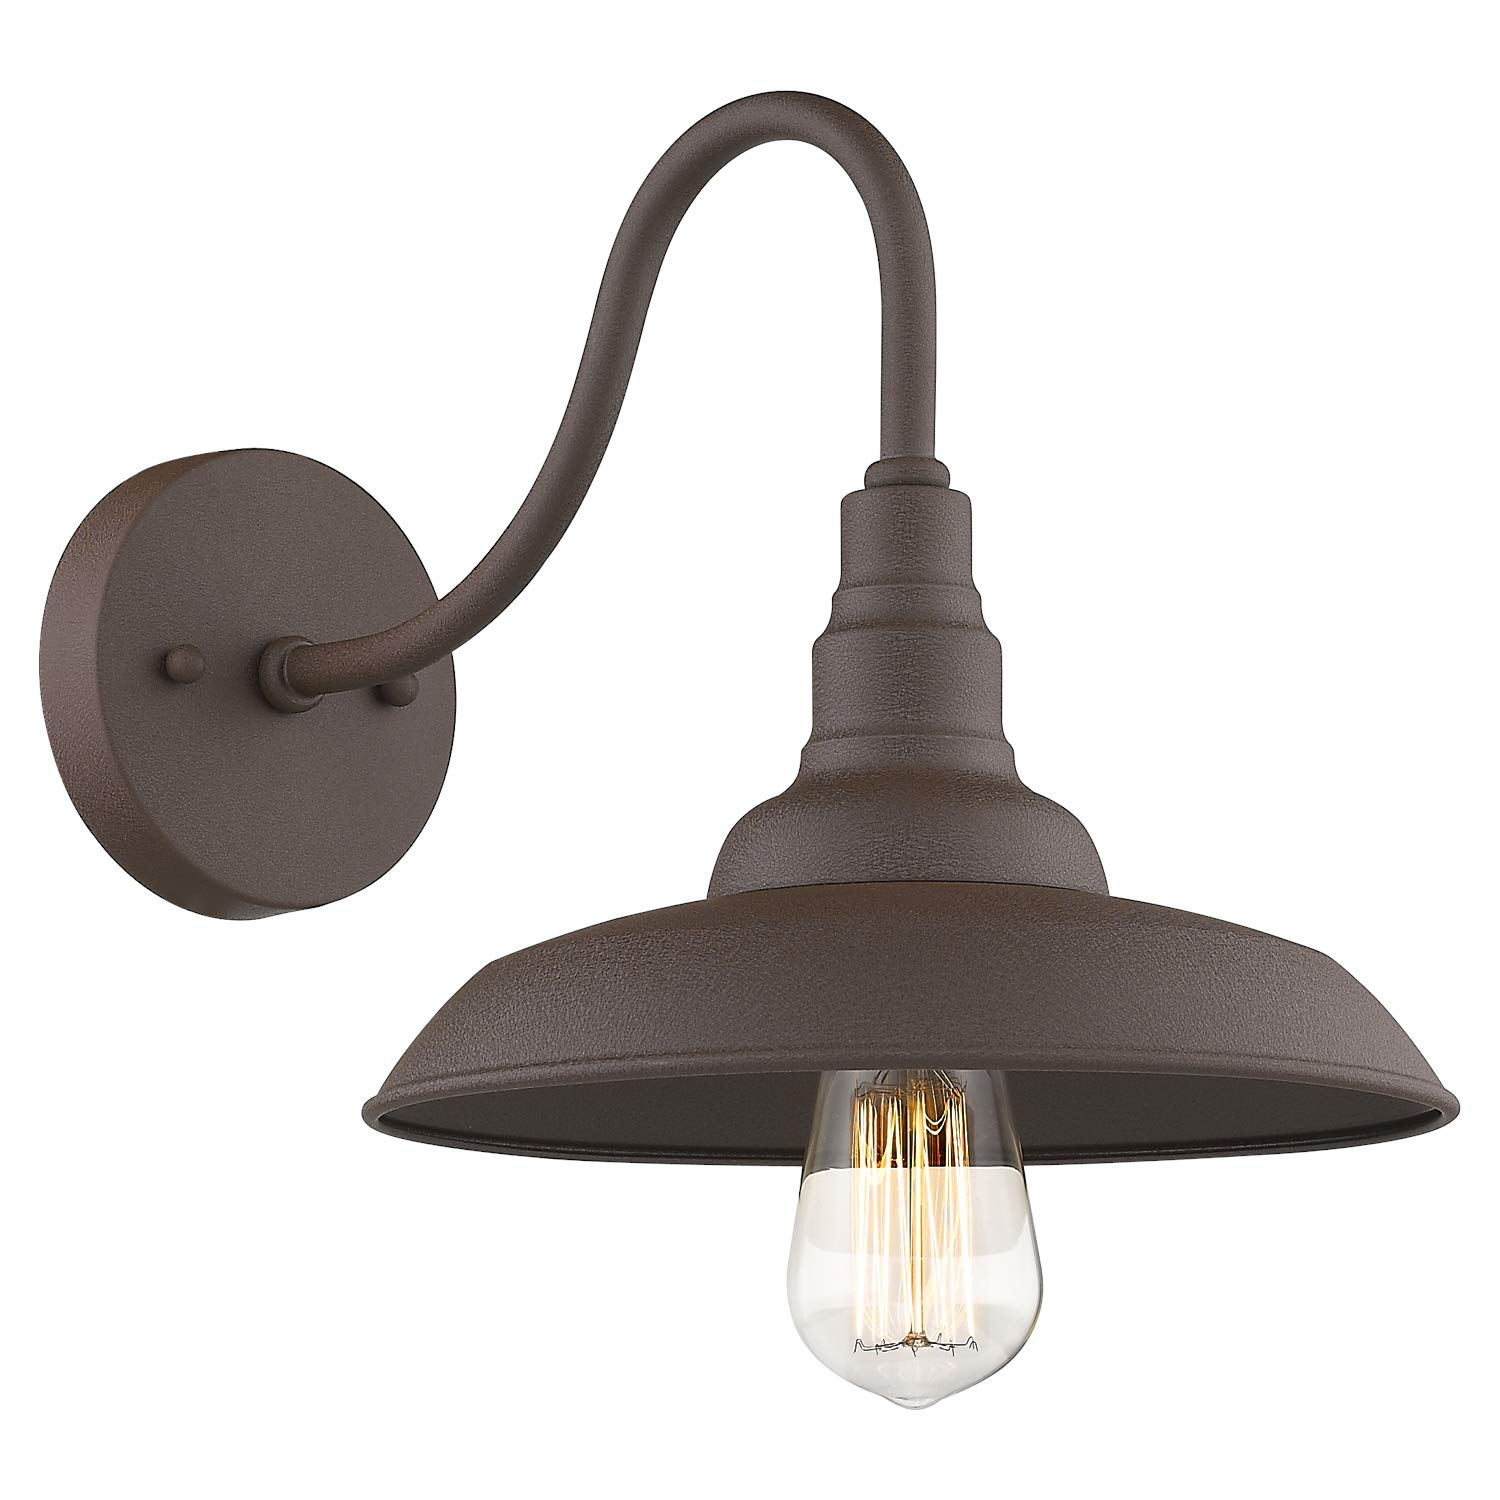 Oil Rubbed Bronze Wall Sconce Option Style Emliviar Barn Light Farmhouse Gooseneck Light Wall Sconce 10 inch, Oil  Rubbed Bronze Finish, 523 - - Amazon.com